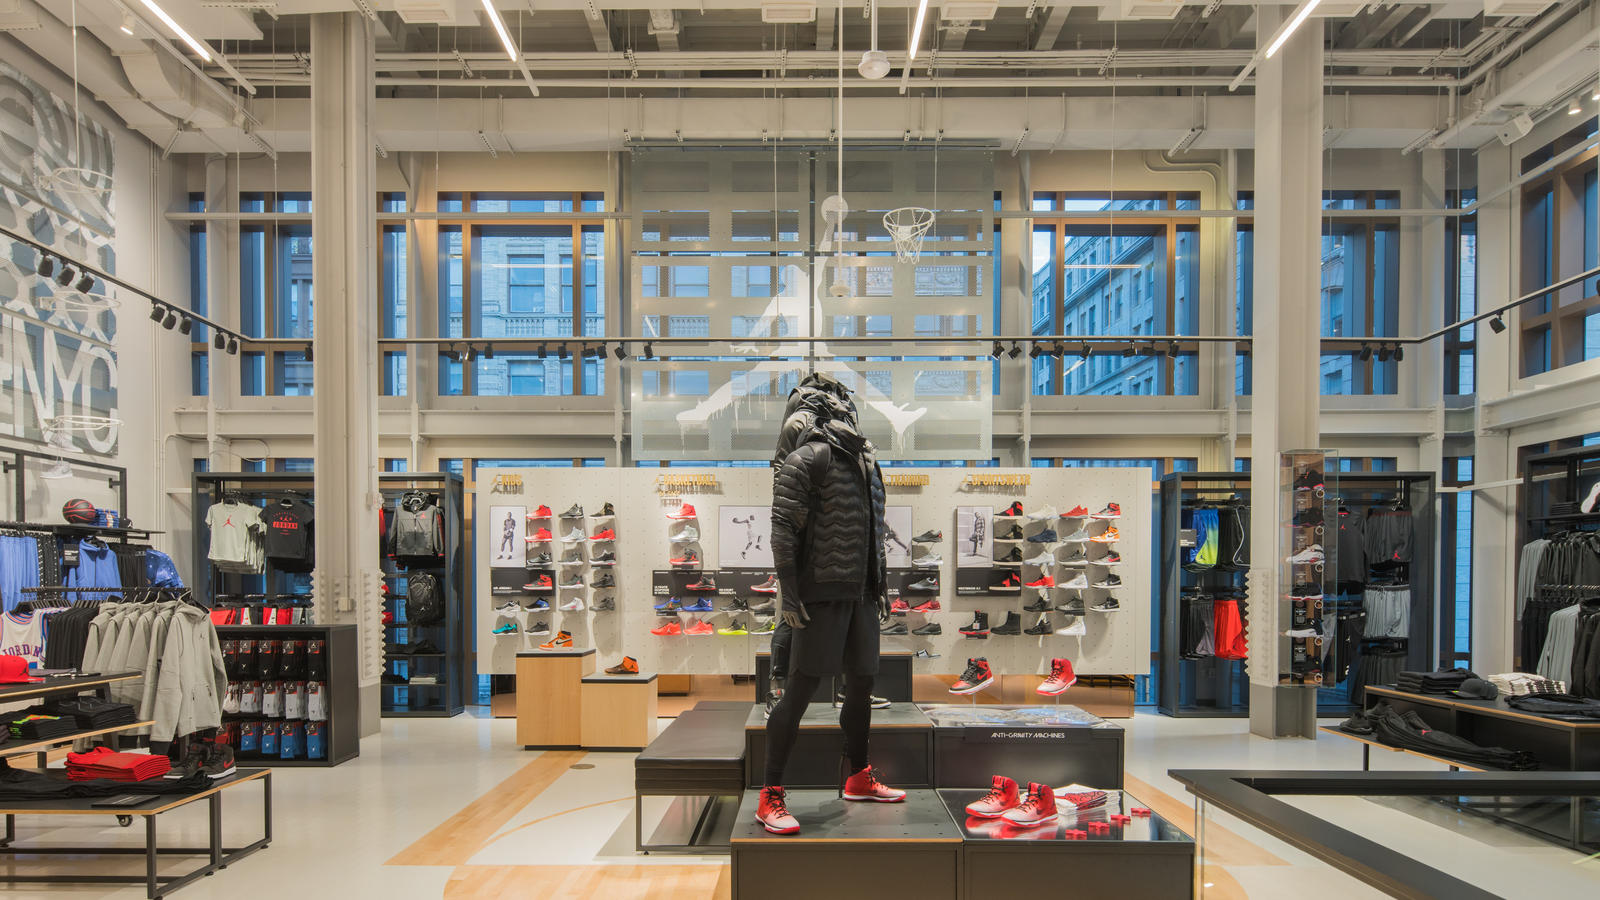 513d9ad6de7 First Look: Inside Nike Soho - Nike News